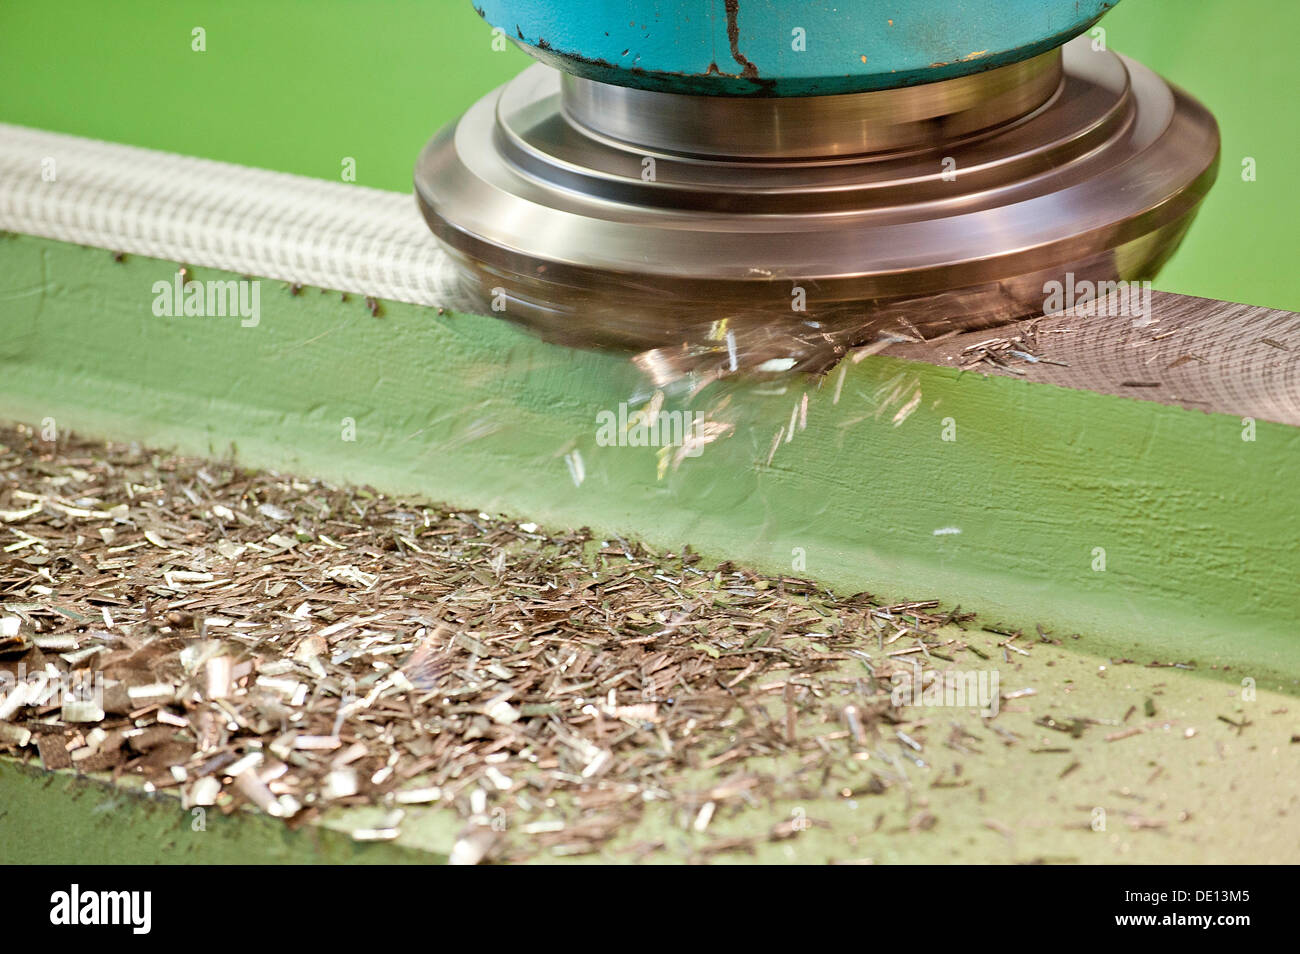 Milling, milling head. metal working, chip removal - Stock Image